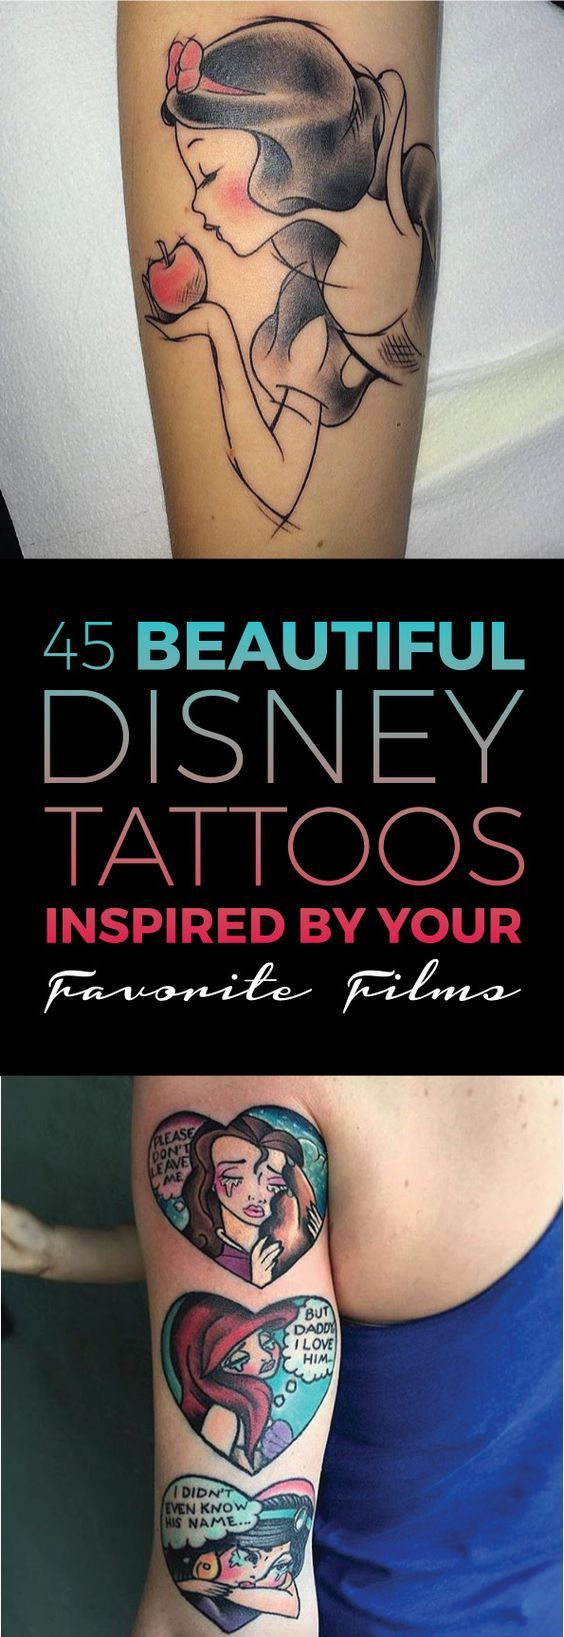 45 Beautiful Disney Tattoos Inspired by Your Favorite Films   TattooBlend